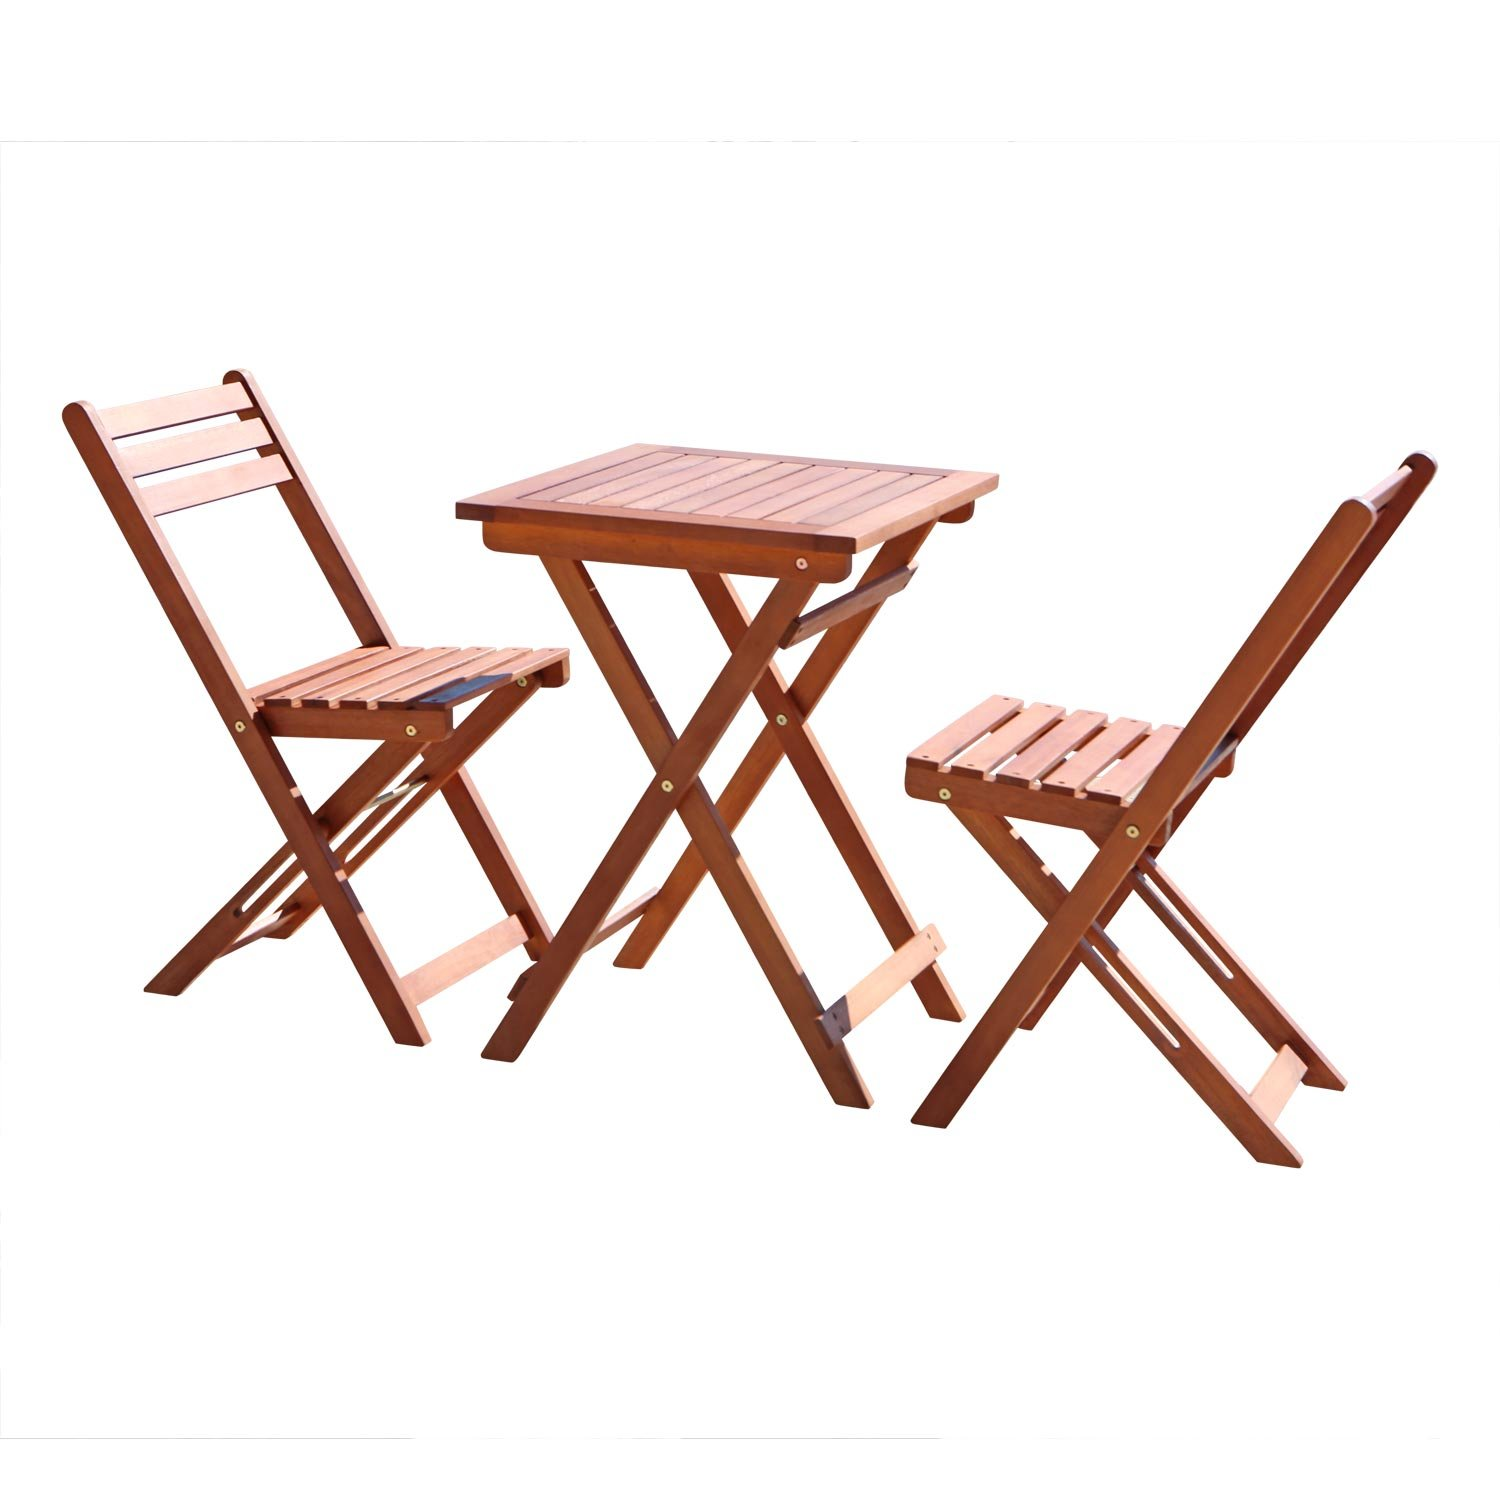 Amazon.com Vifah V1381 Outdoor Wood Folding Bistro Set with Square Table and Two Chairs Garden u0026 Outdoor  sc 1 st  Amazon.com & Amazon.com: Vifah V1381 Outdoor Wood Folding Bistro Set with Square ...